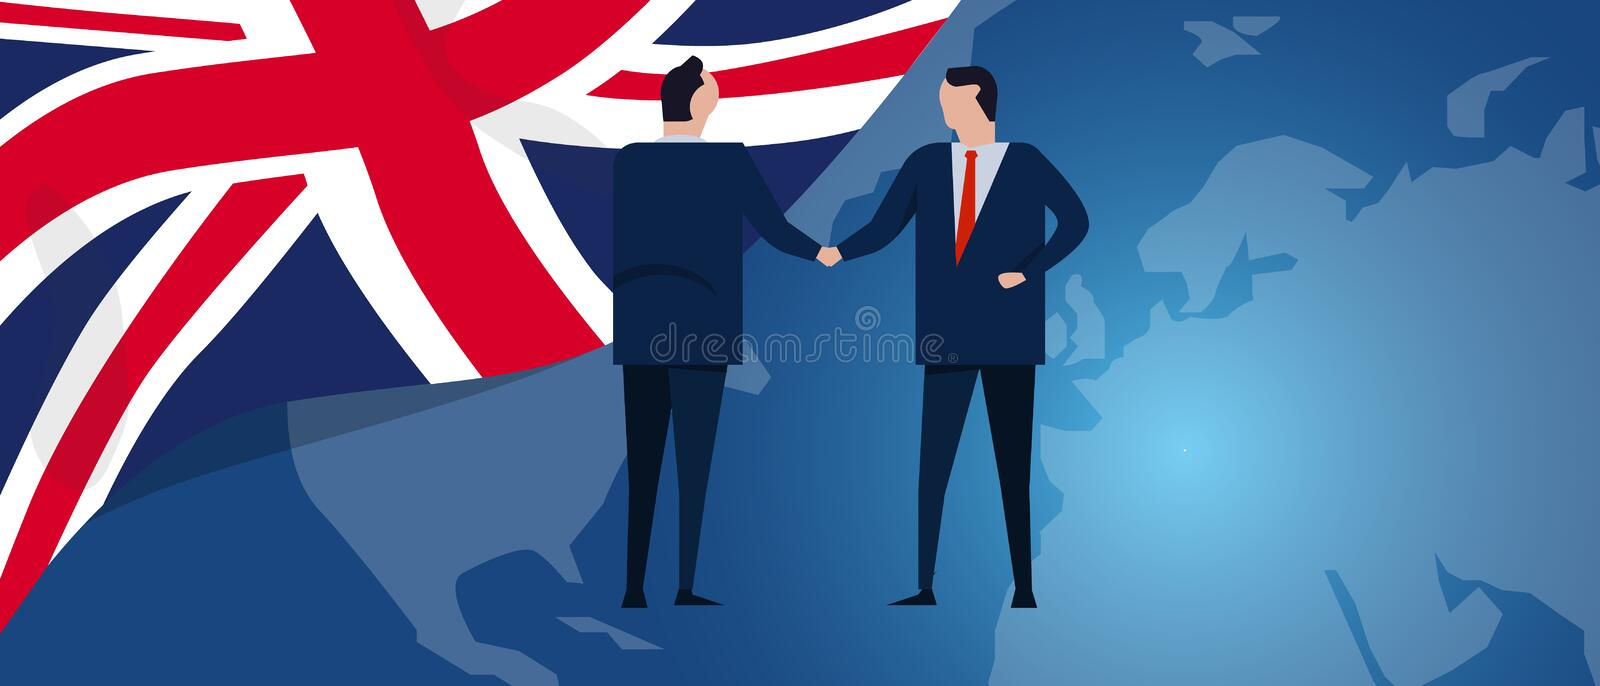 Association BRITANNIQUE d'international de l'Angleterre de l'anglais du Royaume-Uni Négociation de diplomatie Accord de relation  illustration de vecteur